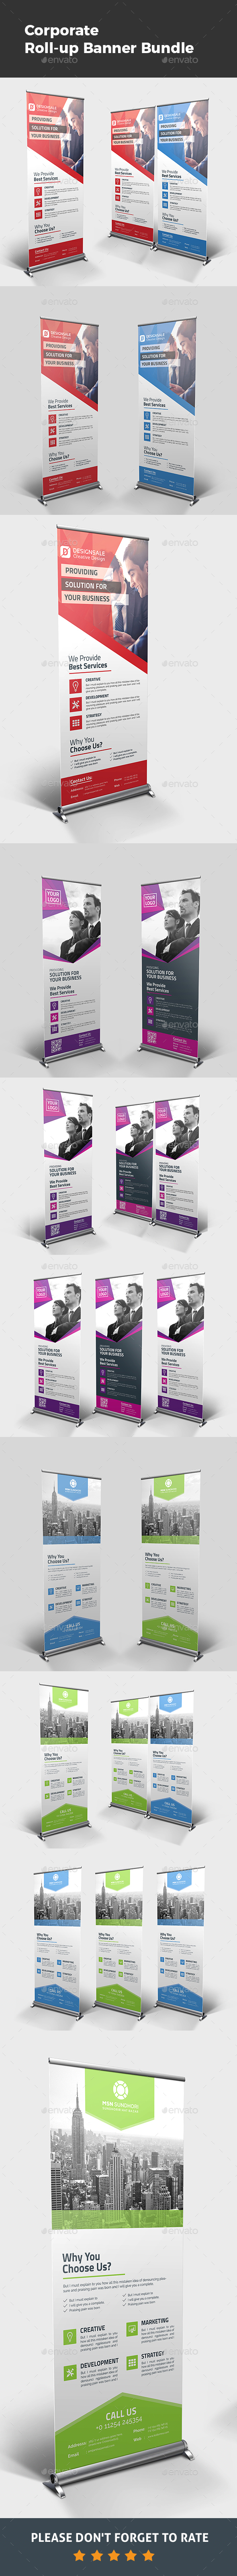 Roll-up Banner Bundle 3 in 1 - Signage Print Templates